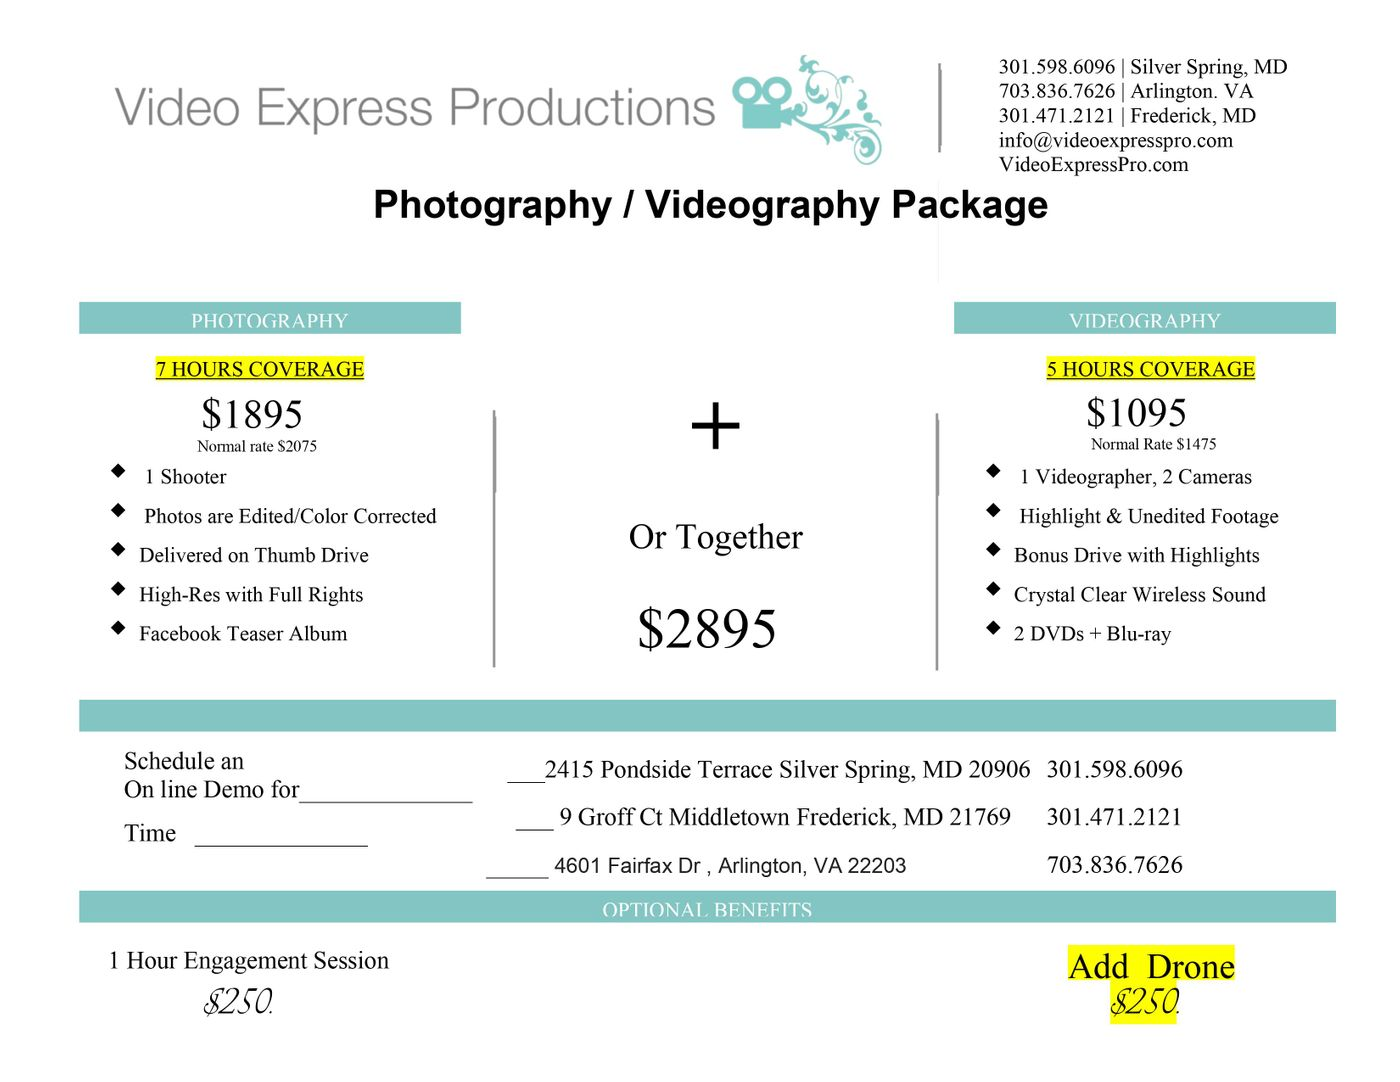 Wedding Photography & Videography Packages in Arlington, VA